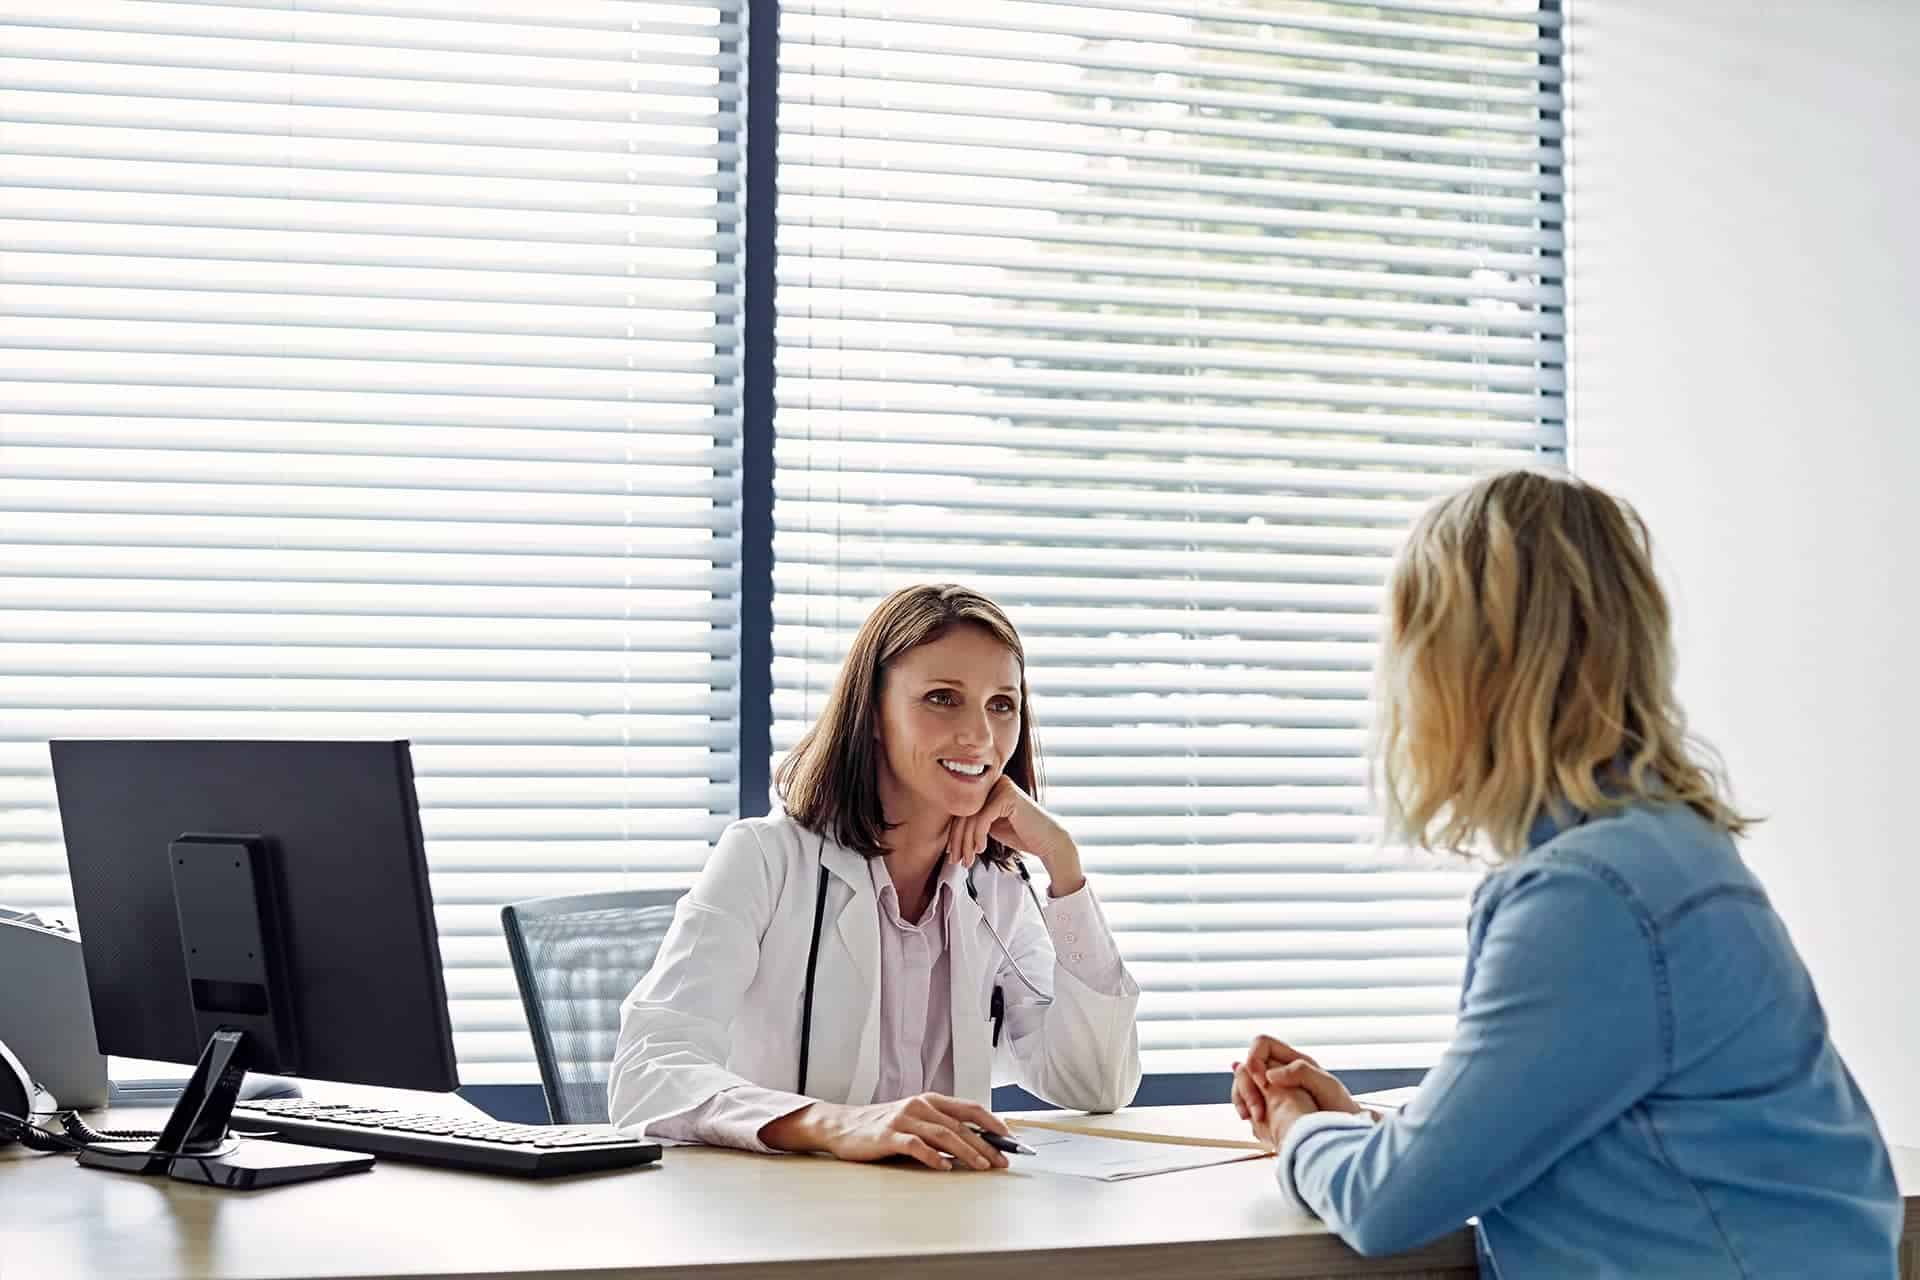 7 Questions to Ask Your Doctor About Medicinal Cannabis